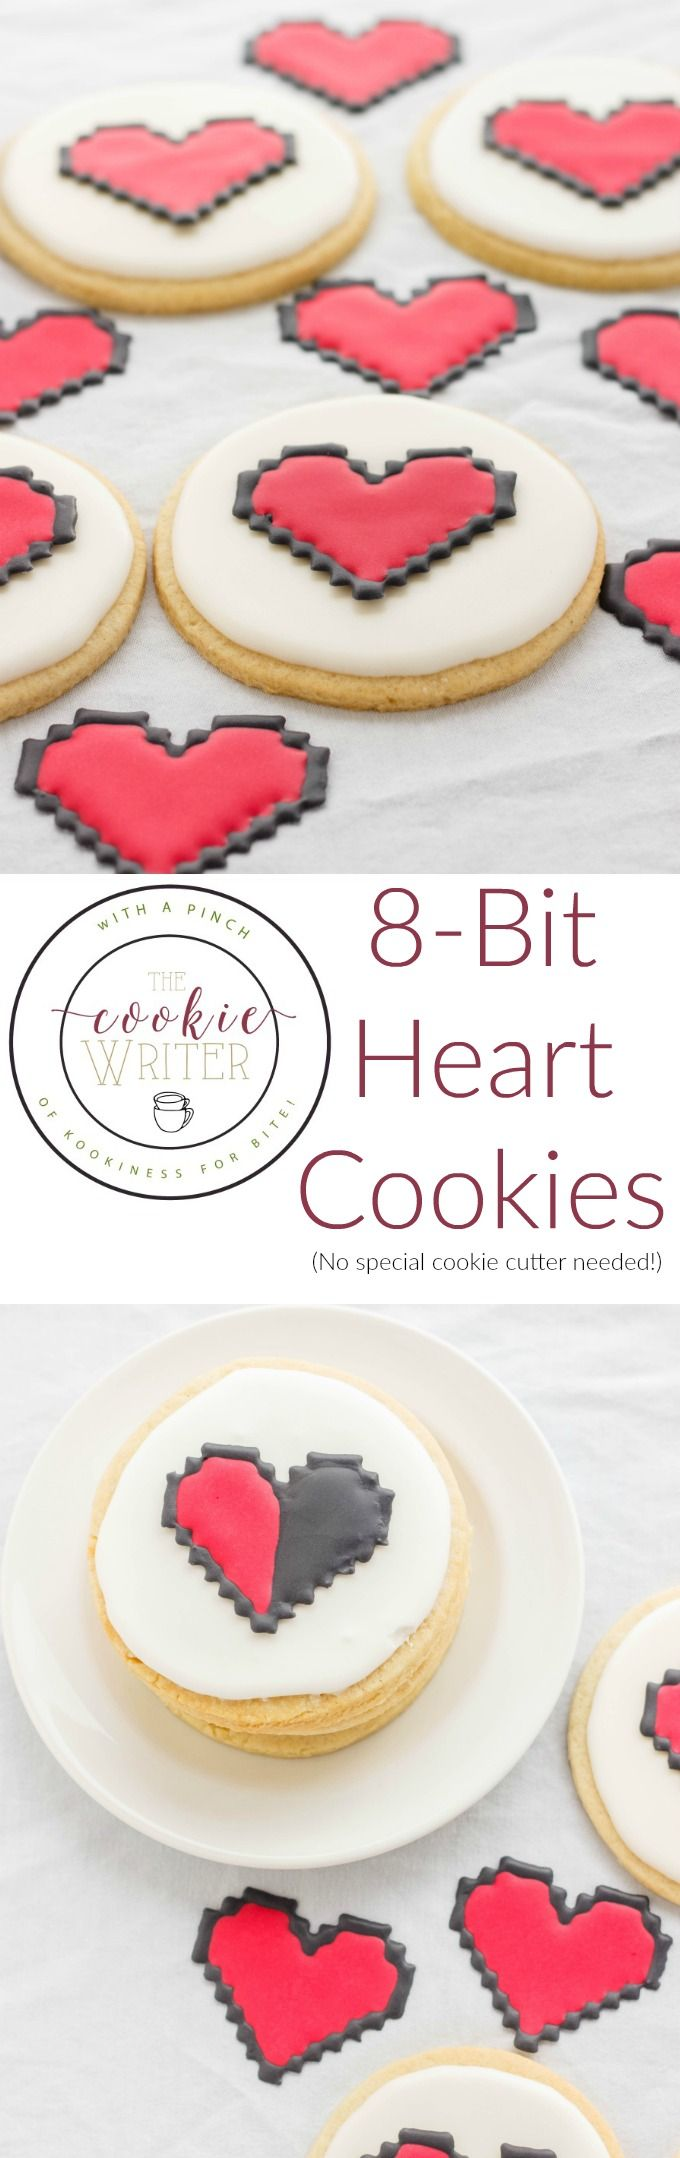 How to make 8-bit heart cookies | http://thecookiewriter.com | @thecookiewriter | #dessert No special cookie cutter required!